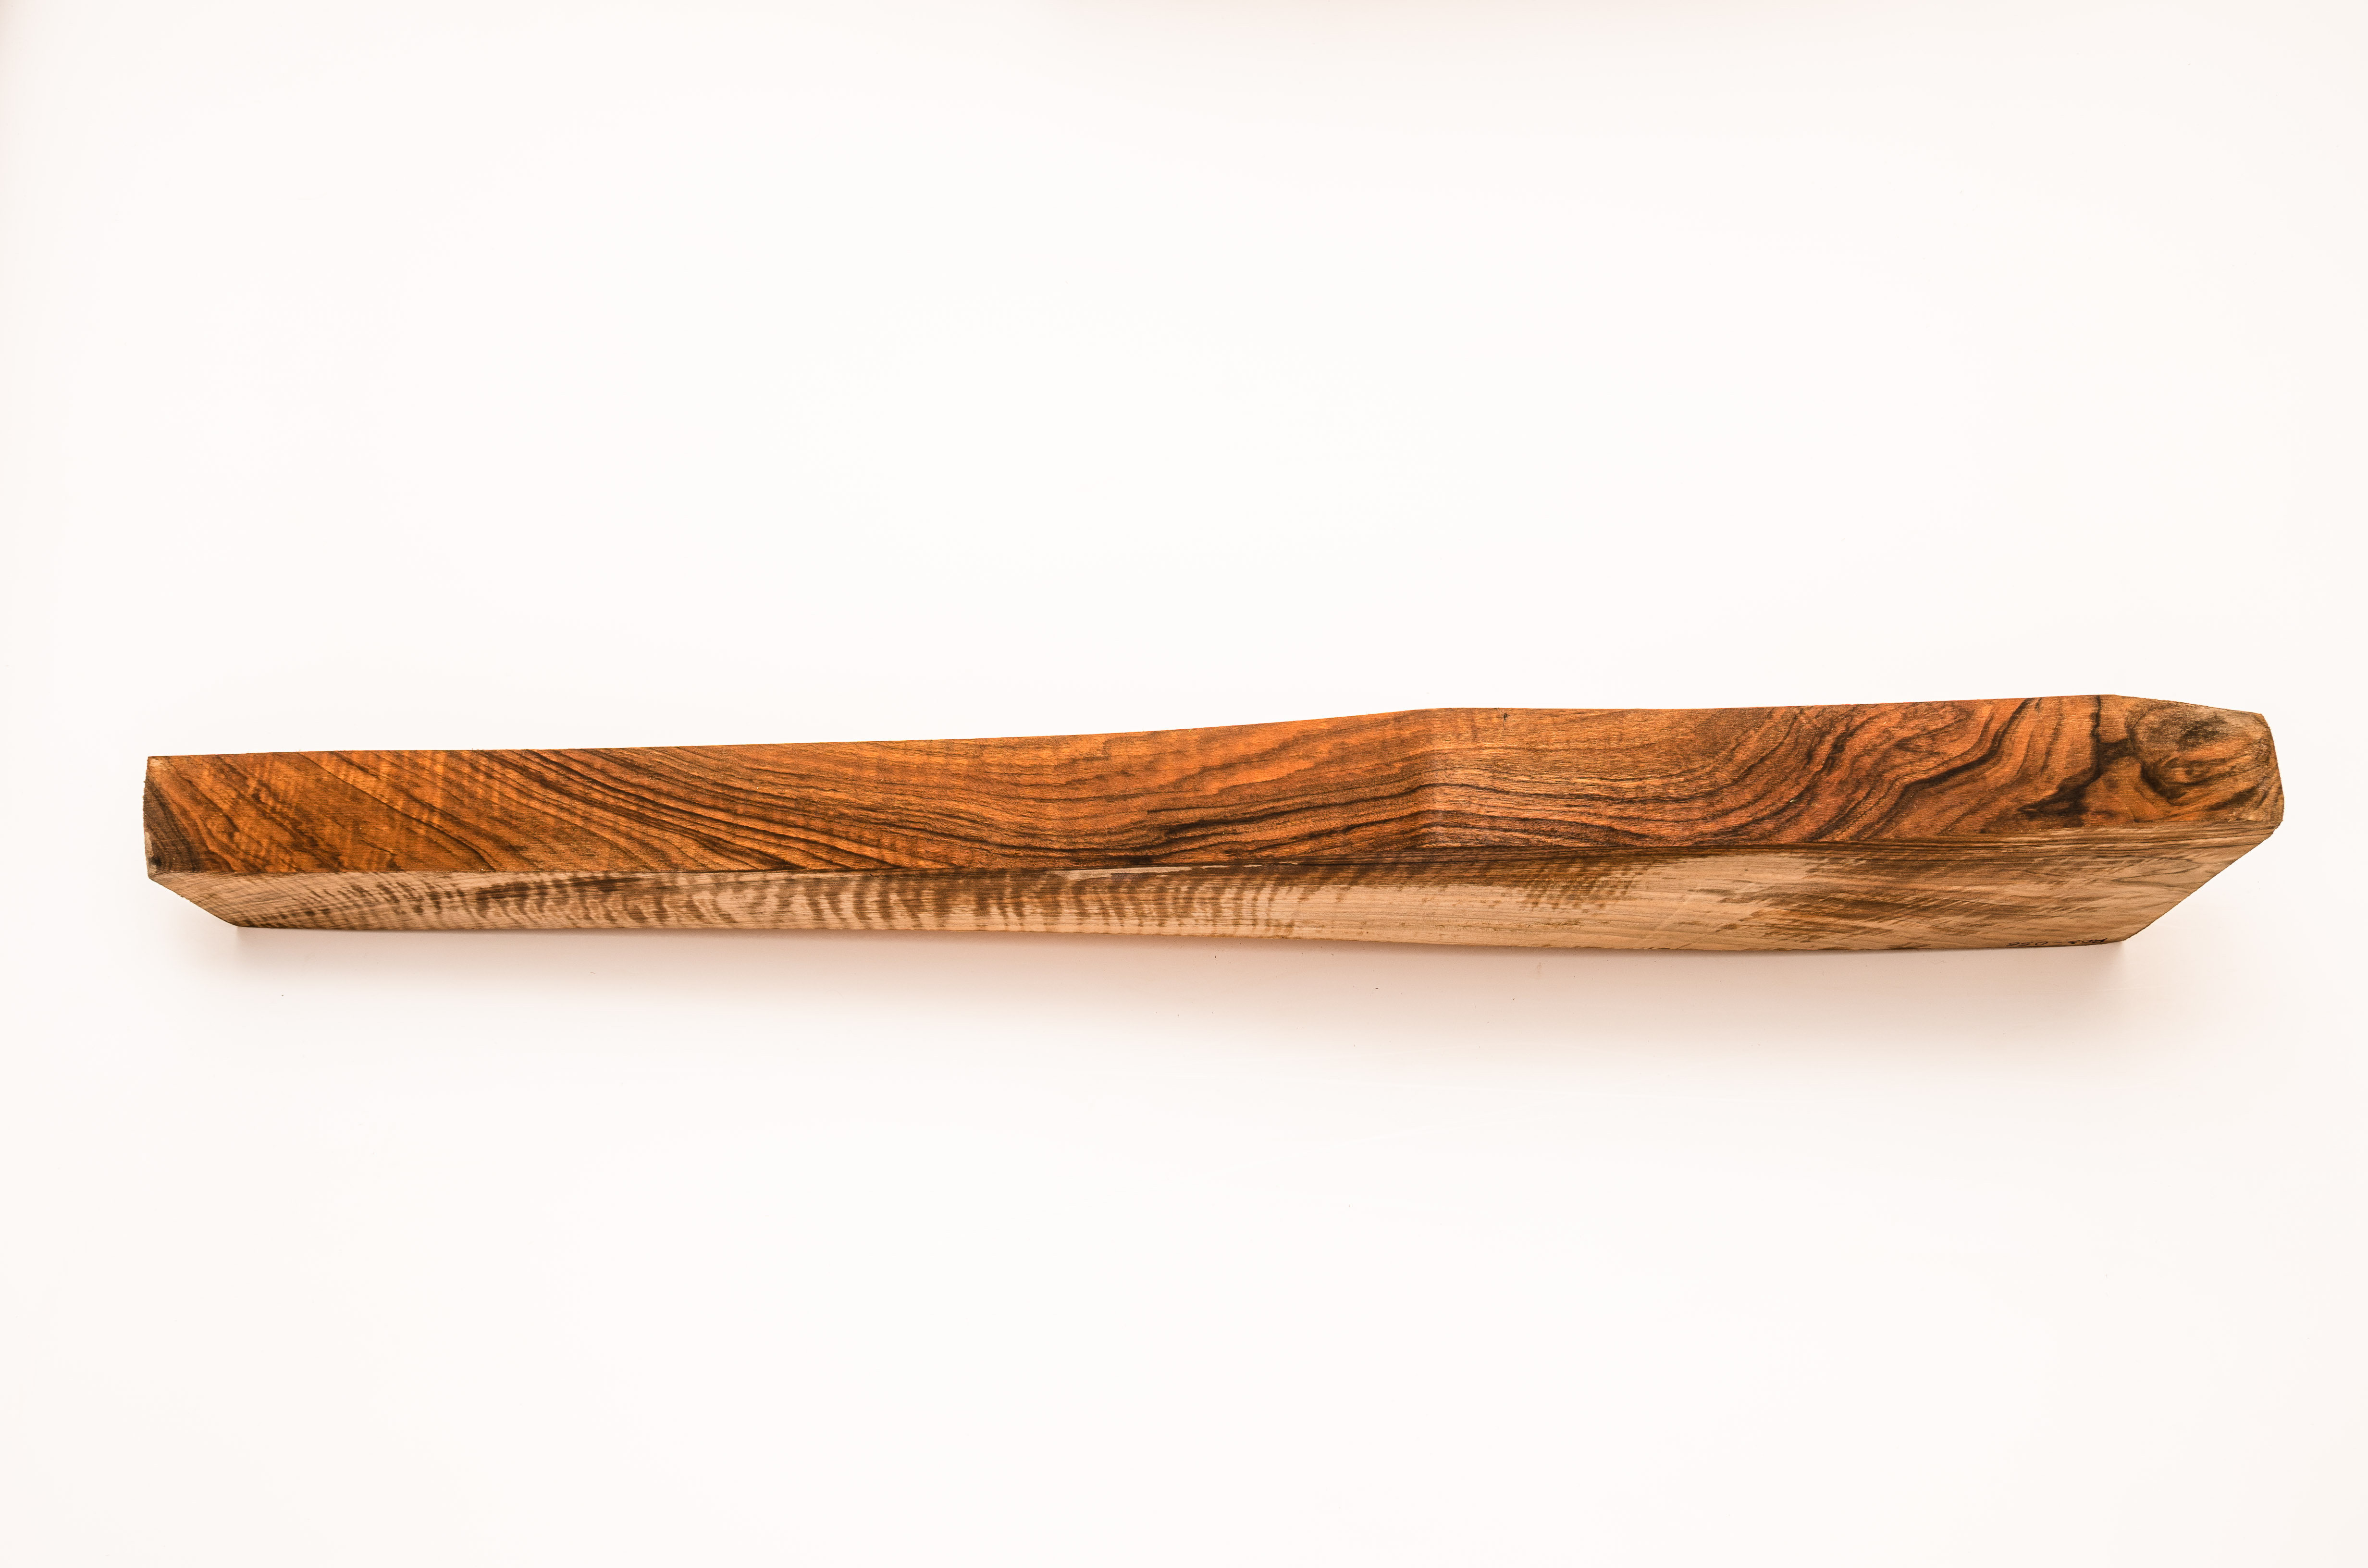 walnut_stock_blanks_for_guns_and_rifles-1493